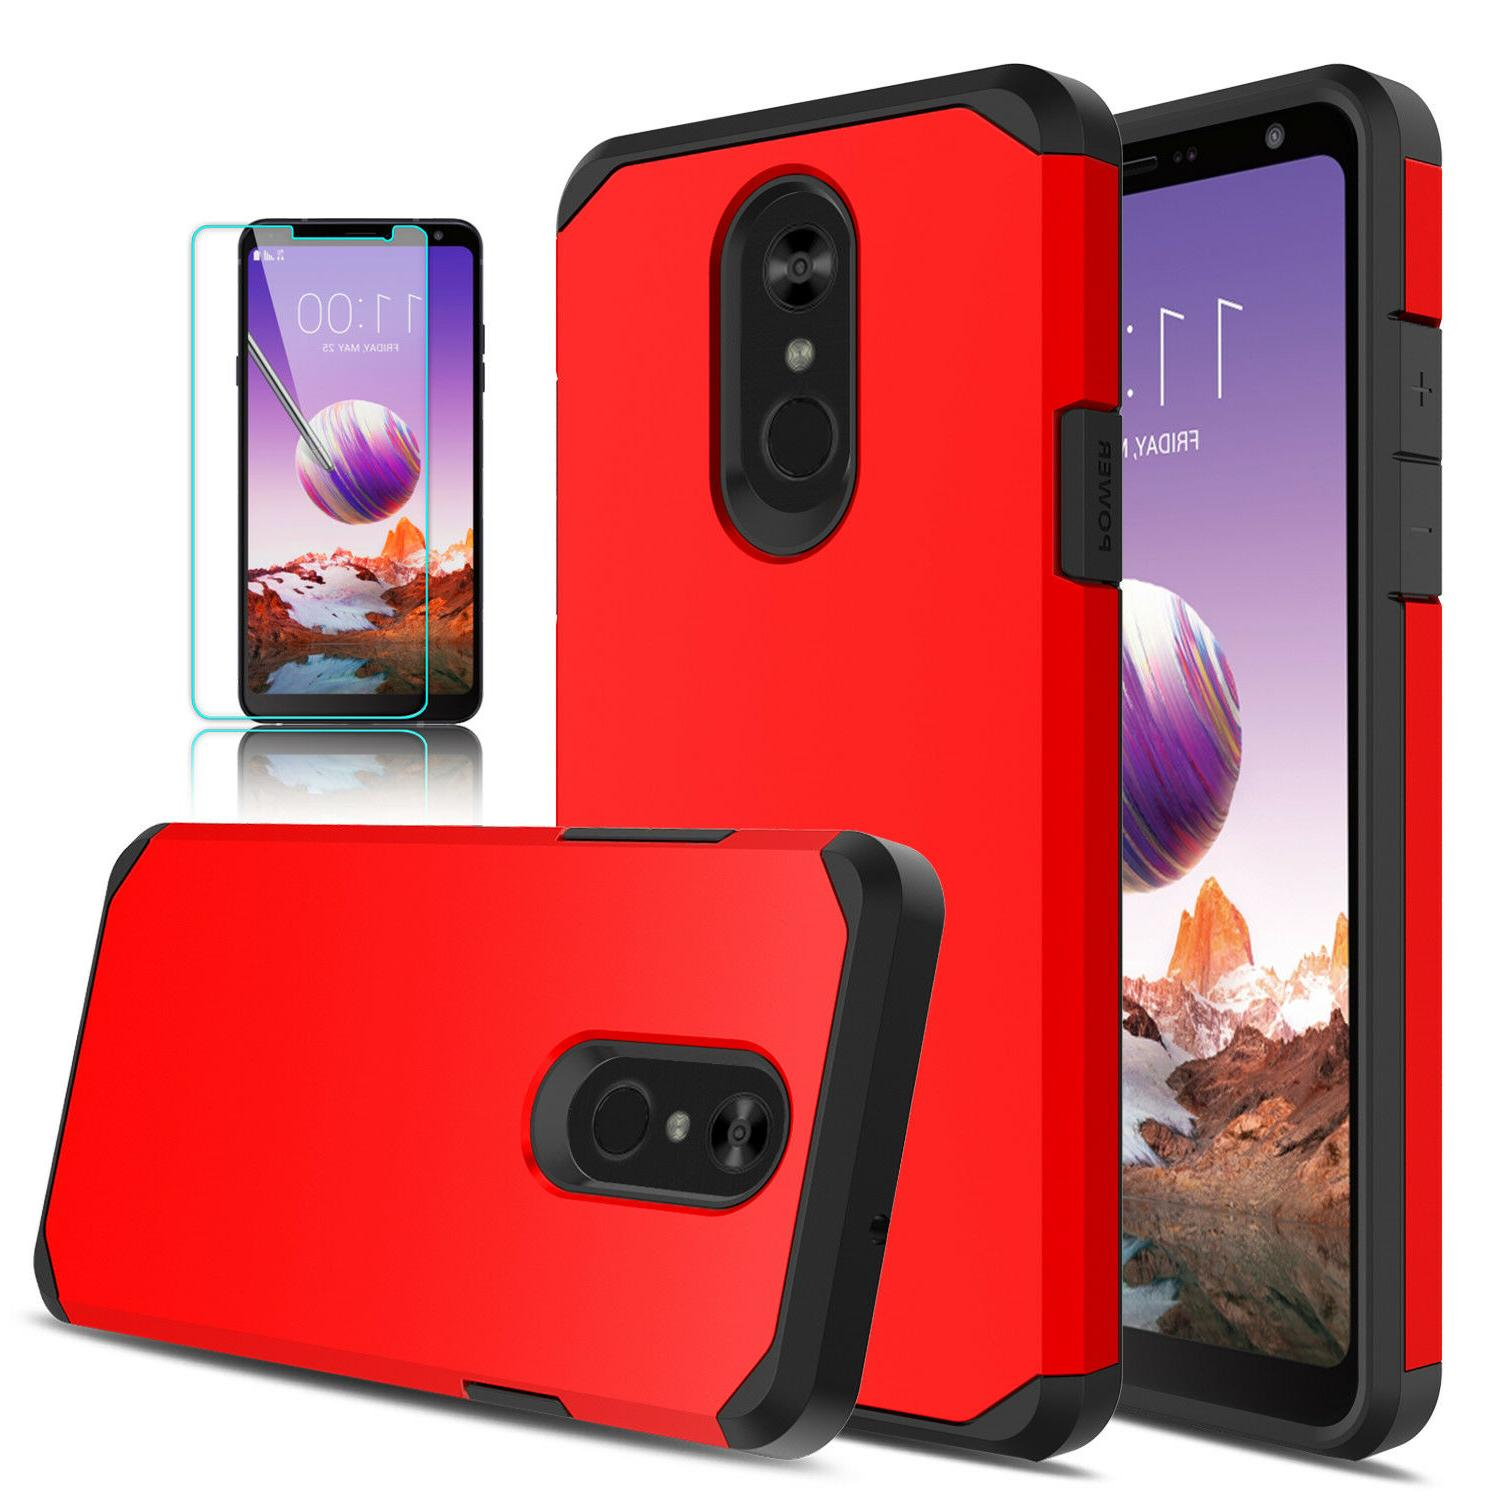 For Stylo 4/4+ Plus Cover/Tempered Glass Screen Protector